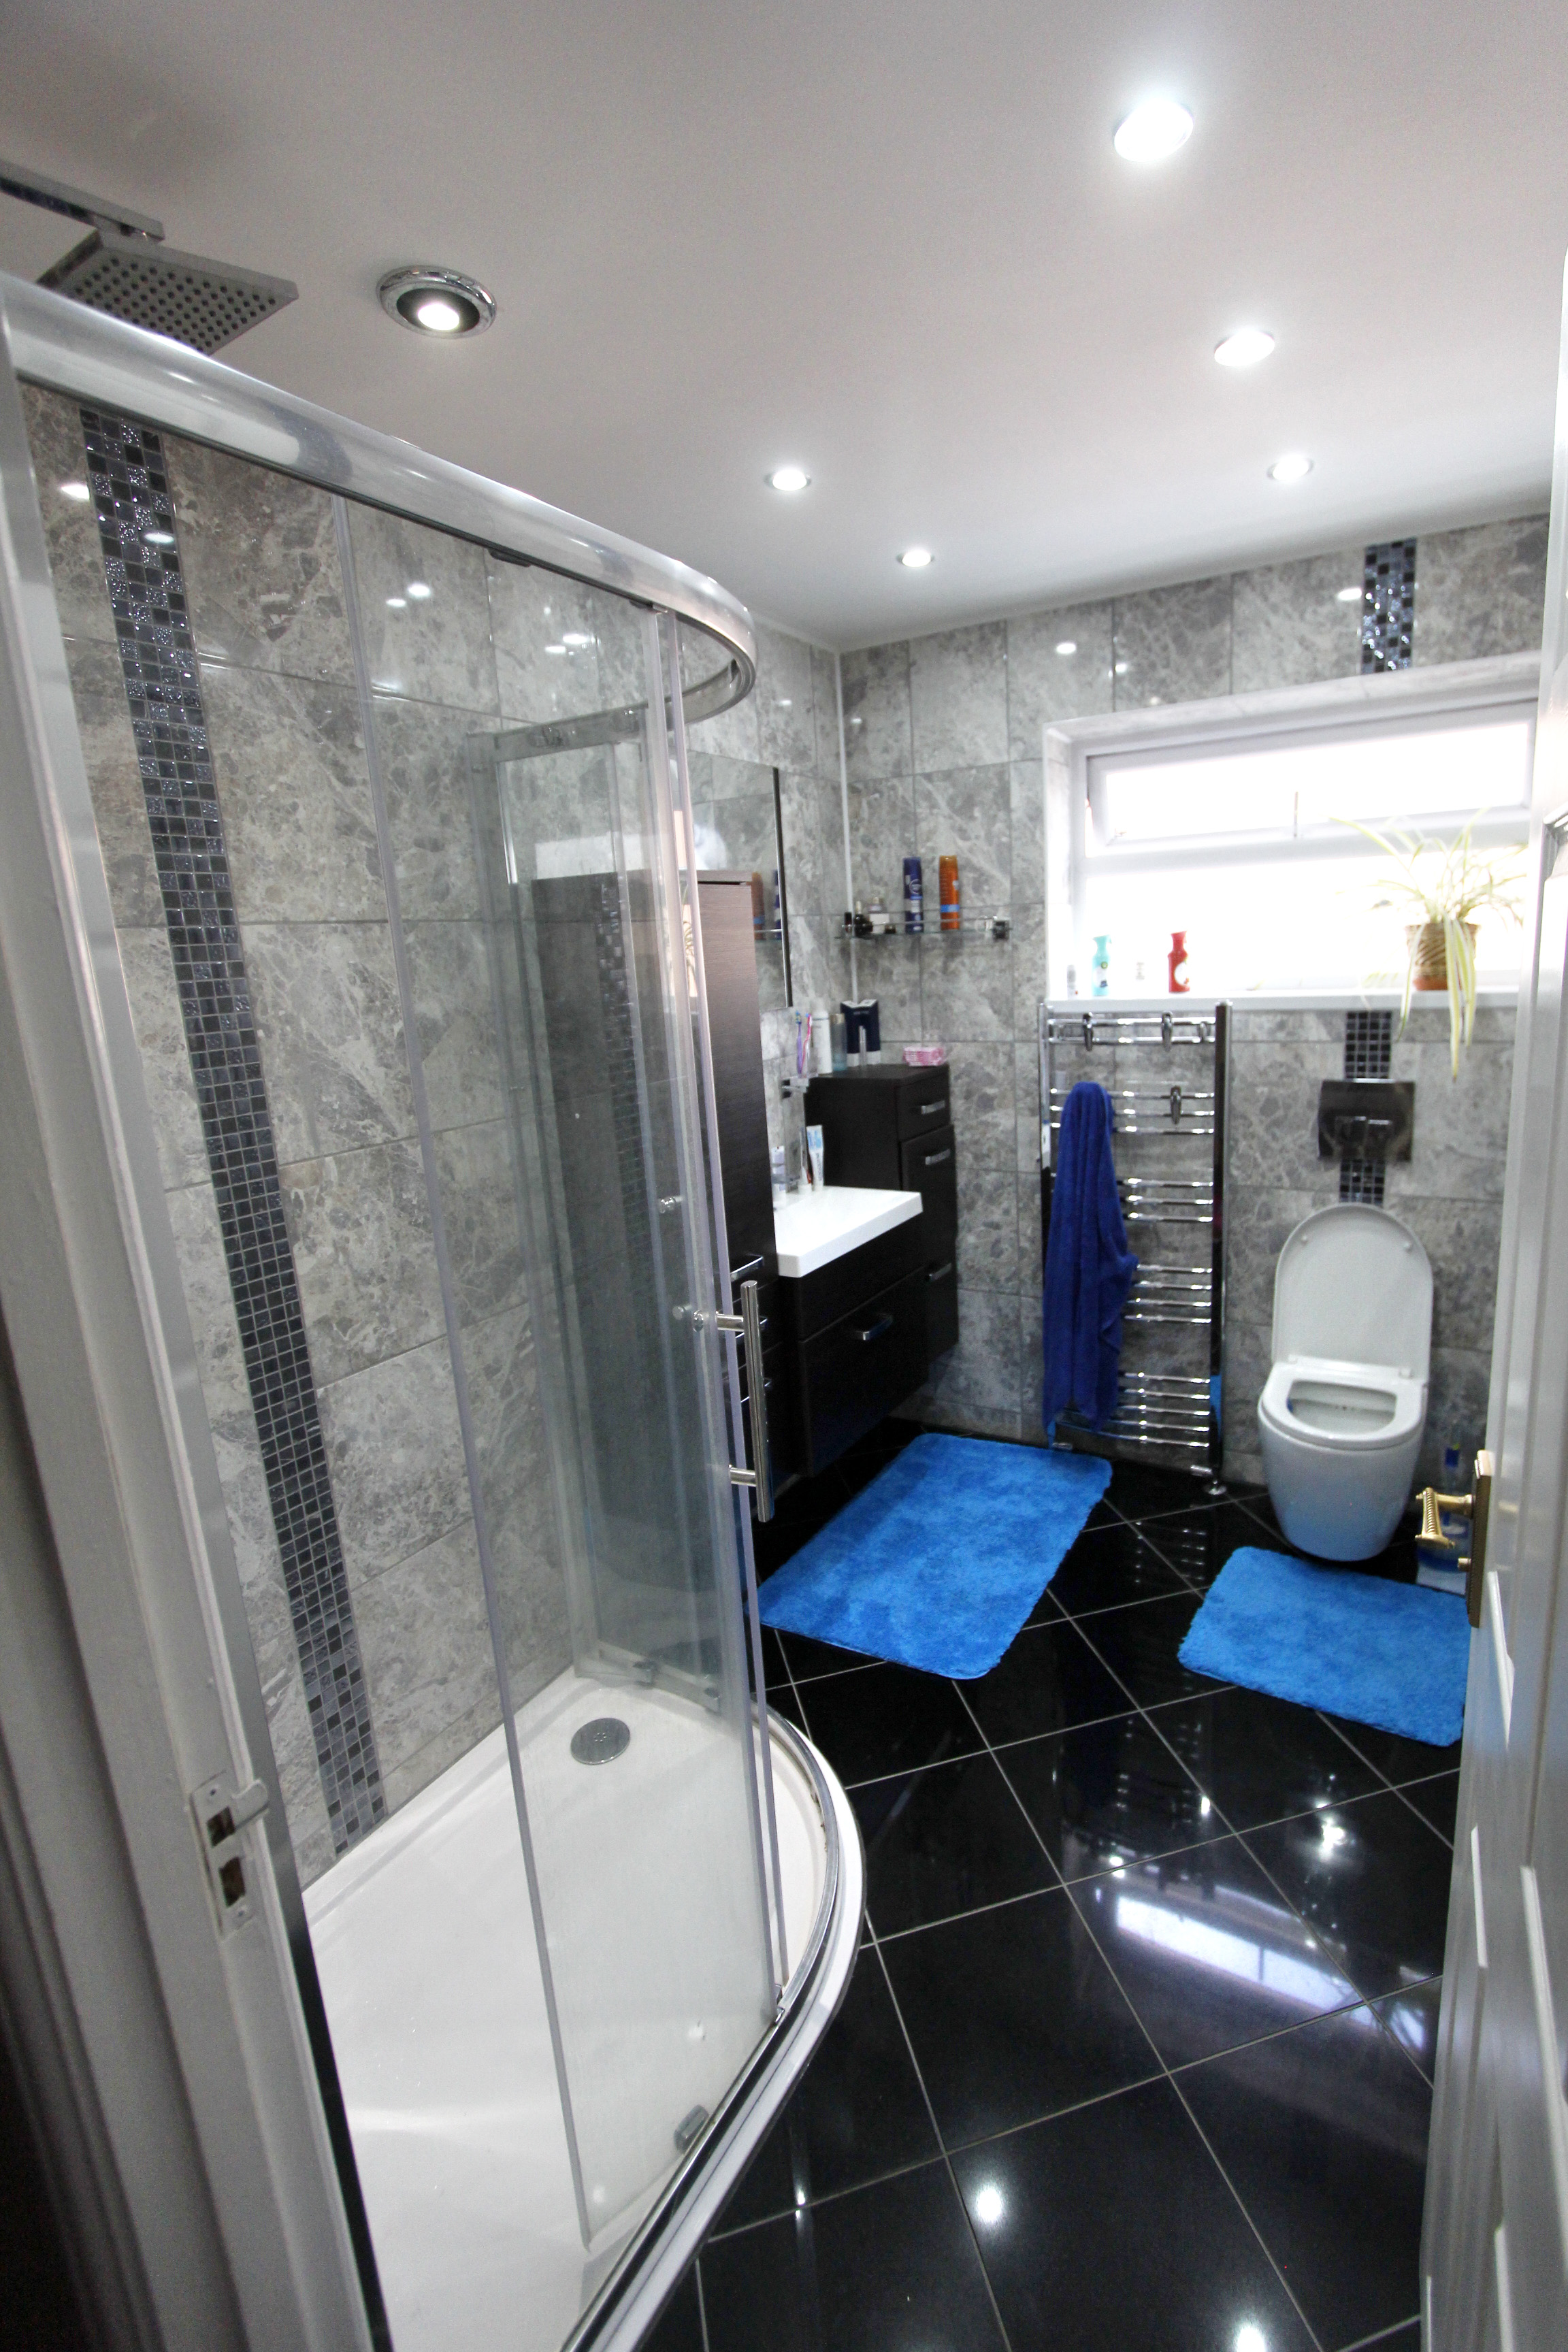 Grantham. Bathroom renovation